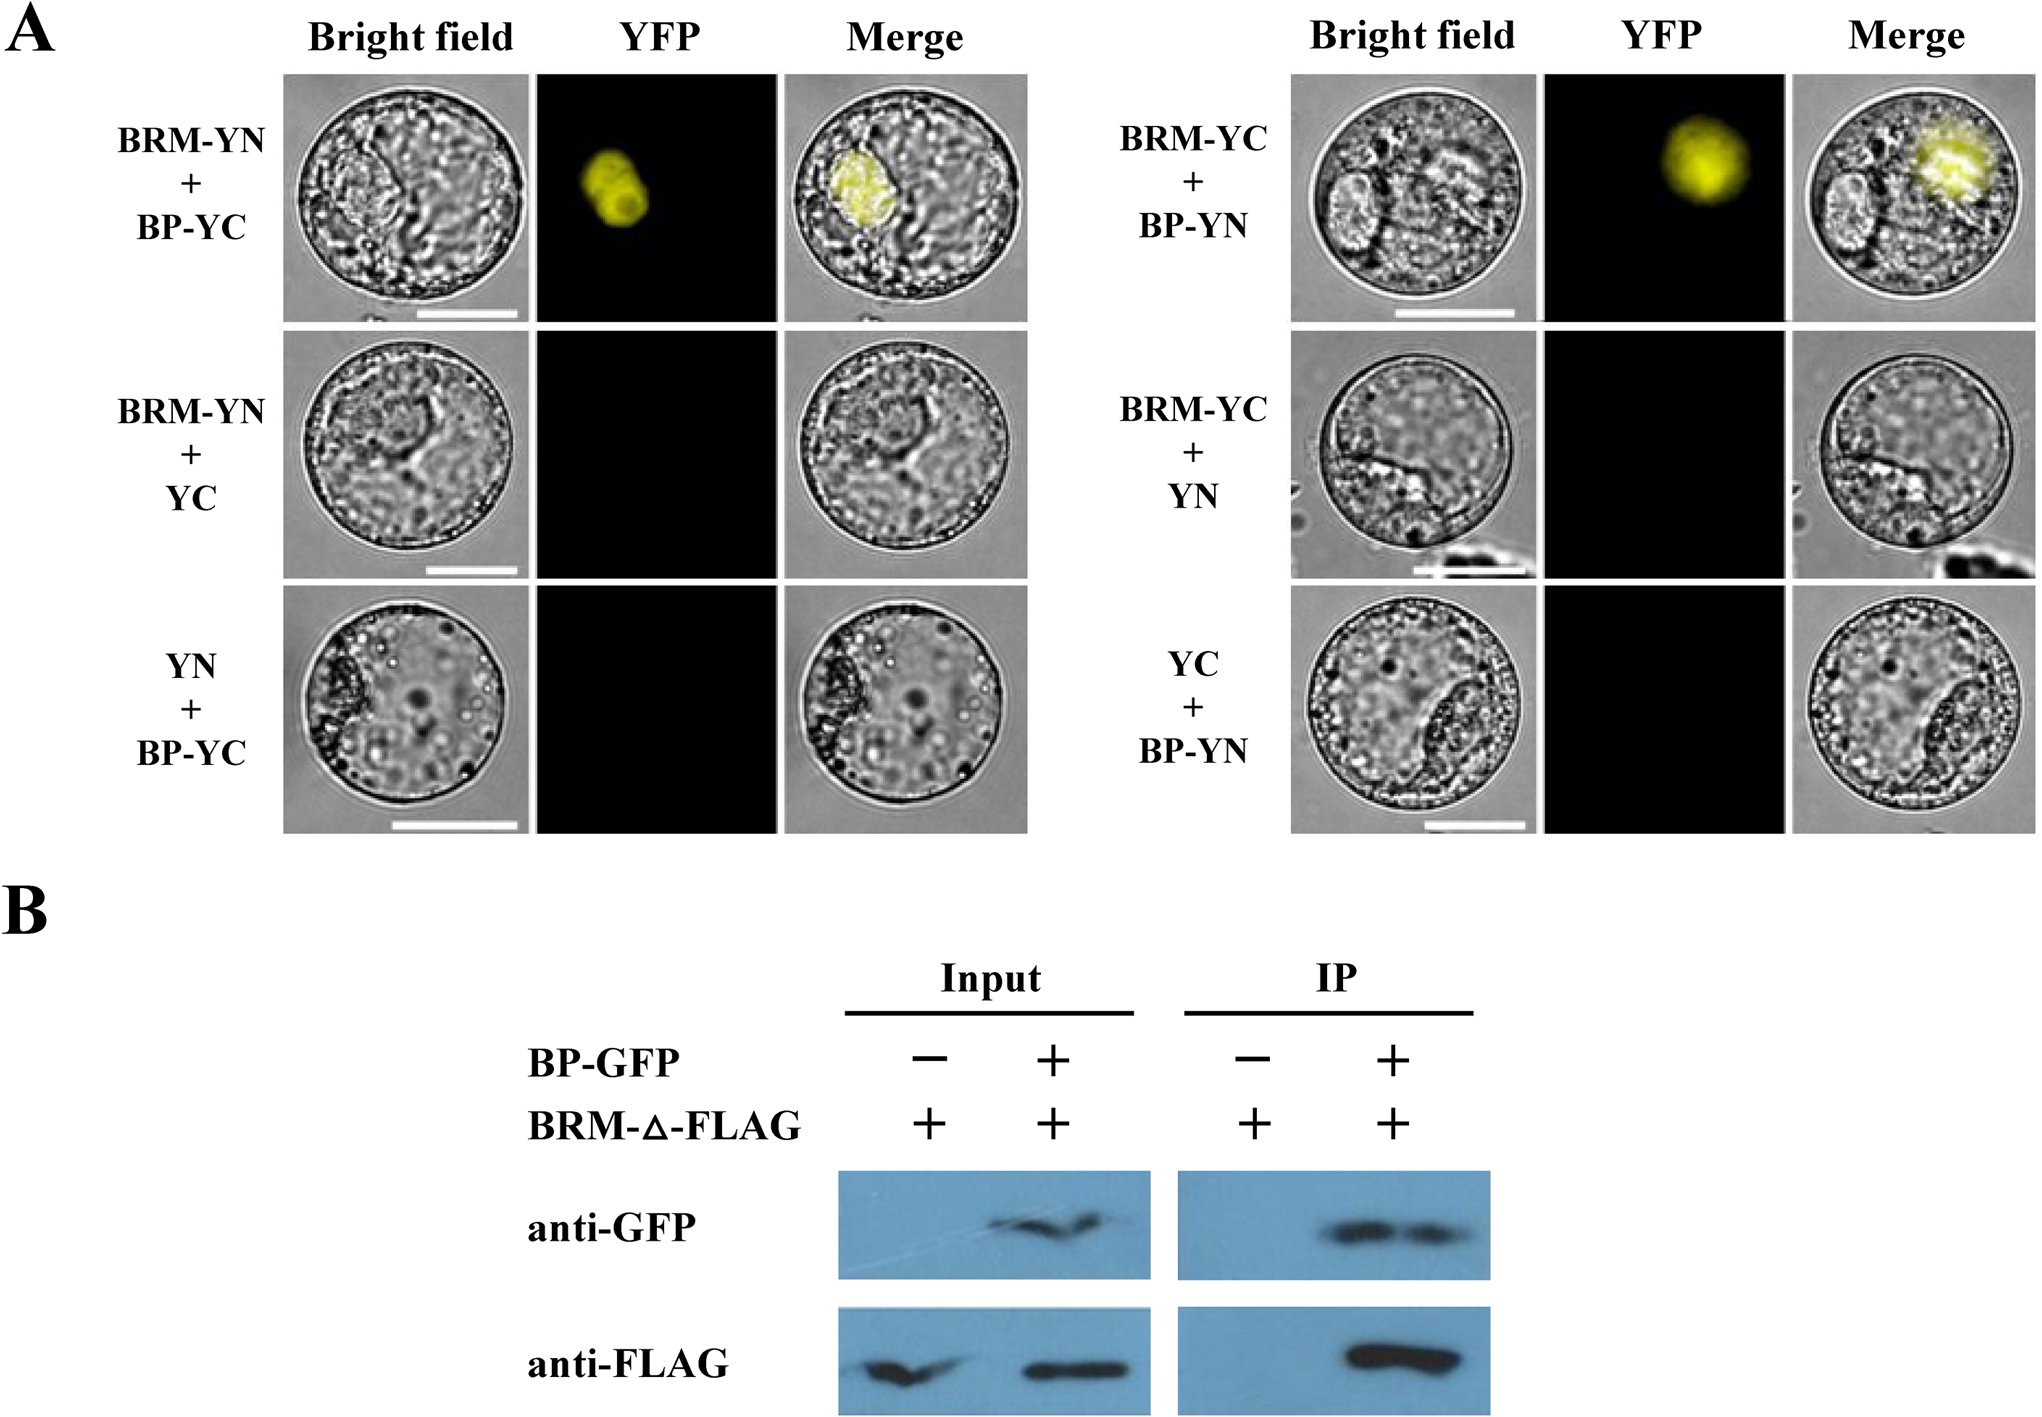 BRM interacts with BP <i>in vivo</i> detected by BiFC and Co-IP assays.